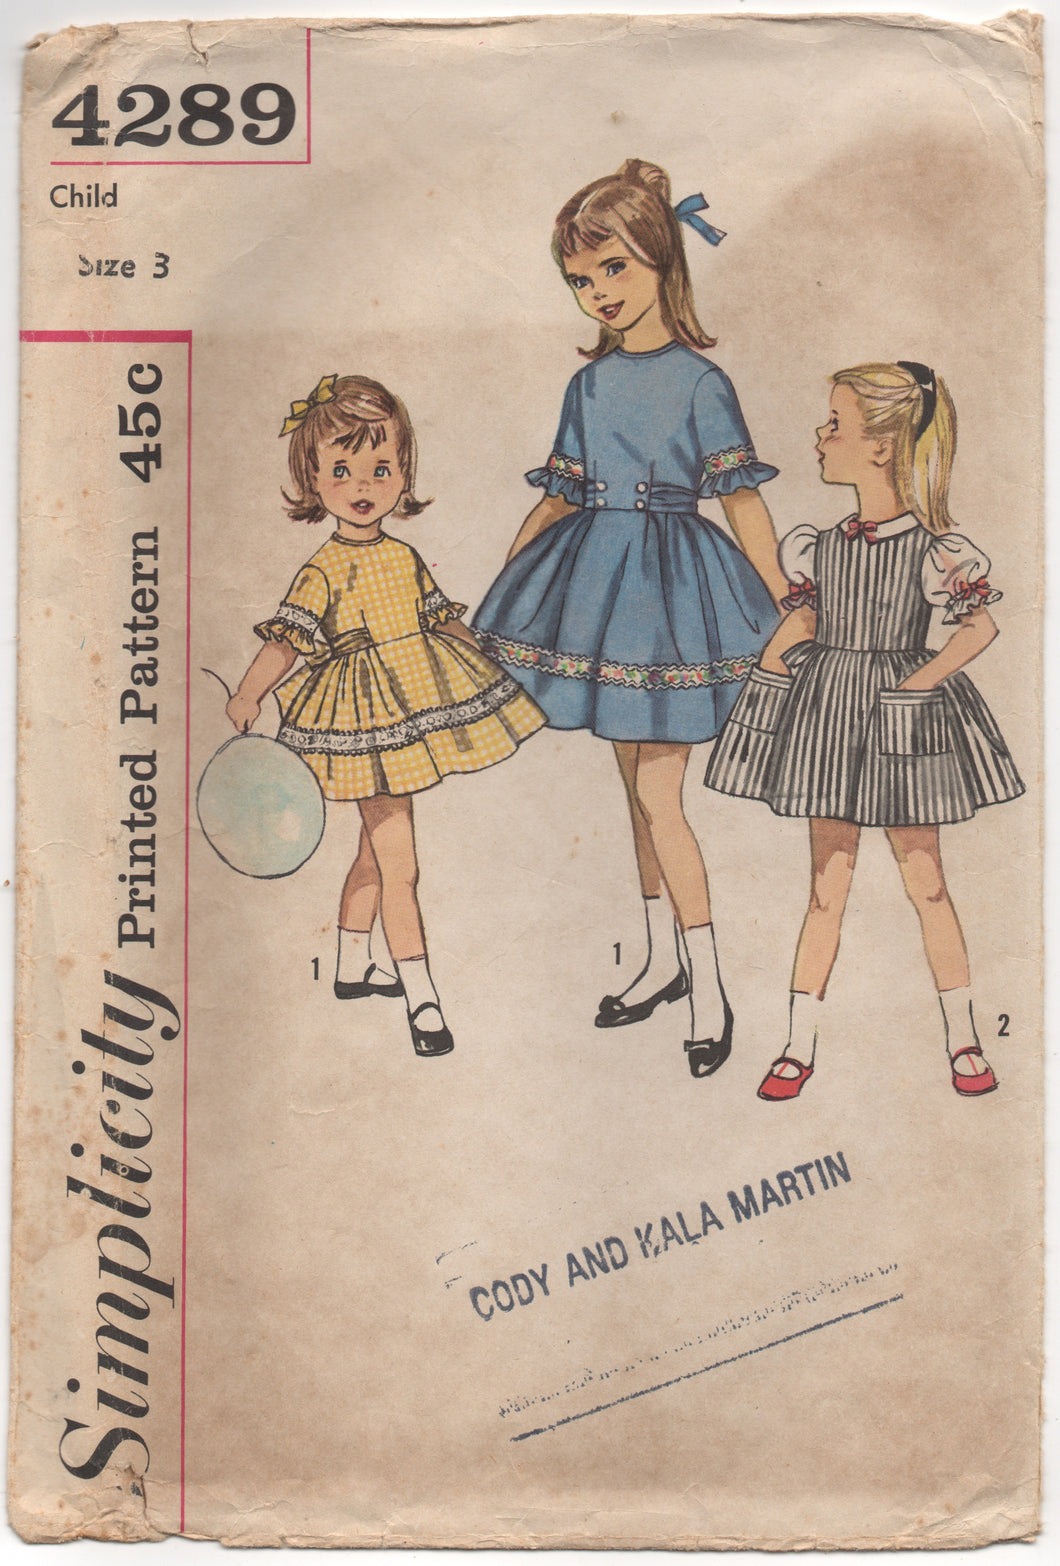 1960's Simplicity Girl's One Piece Dress with Tie Sash Pattern - Chest 22